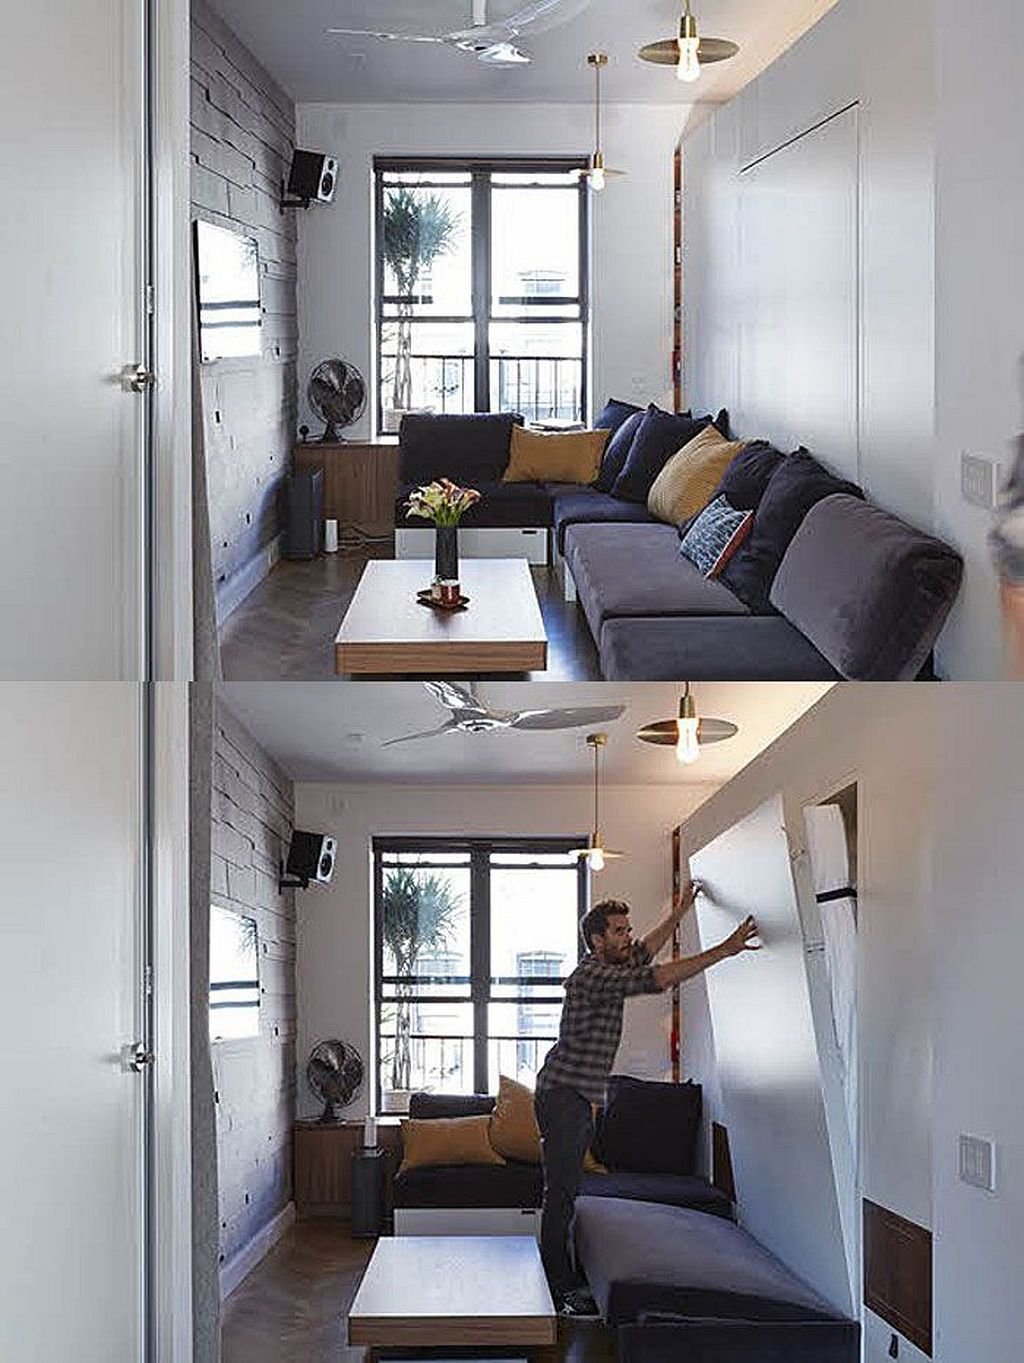 Awesome 40 Clever Micro Apartment Organization Ideas Https Kidmagz Com 40 Clever Micro Apartme Apartment Interior Apartment Interior Design Apartment Design